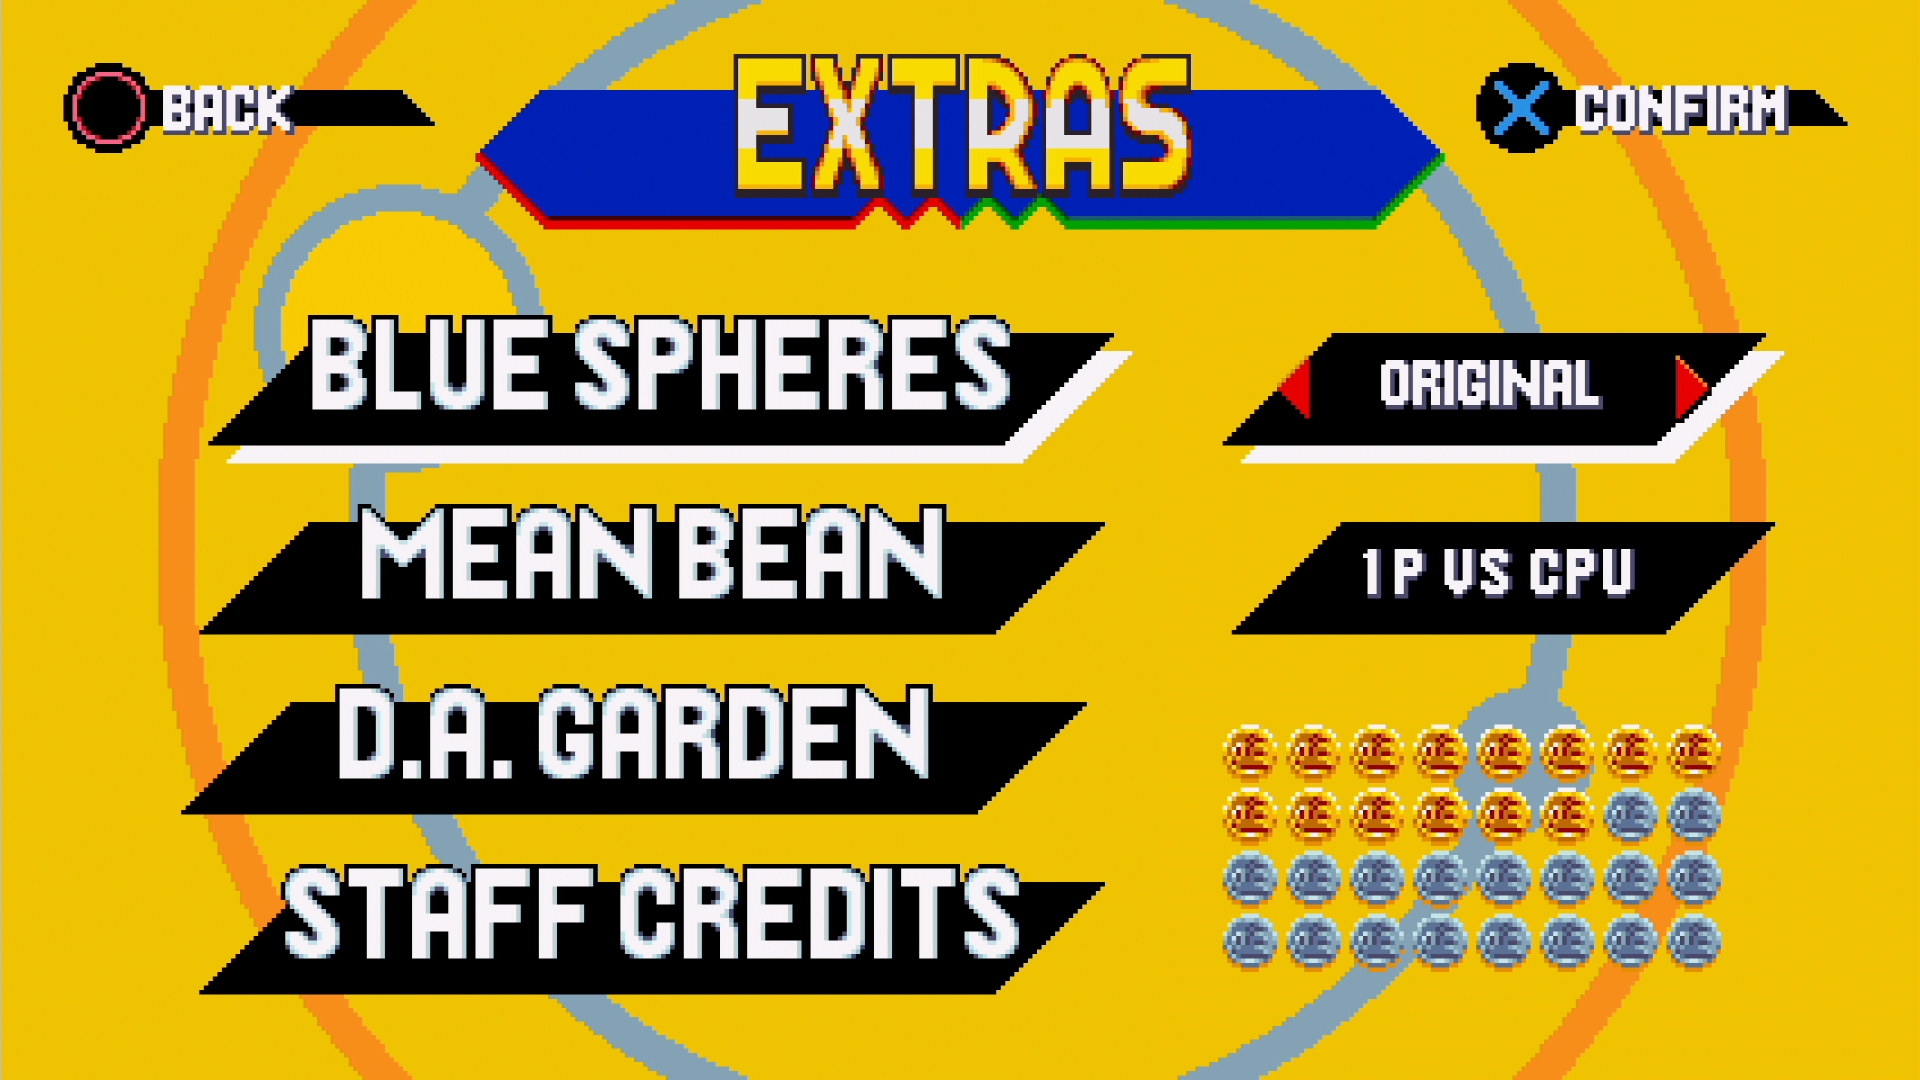 sonic_mania_extras_cheats_unlockables